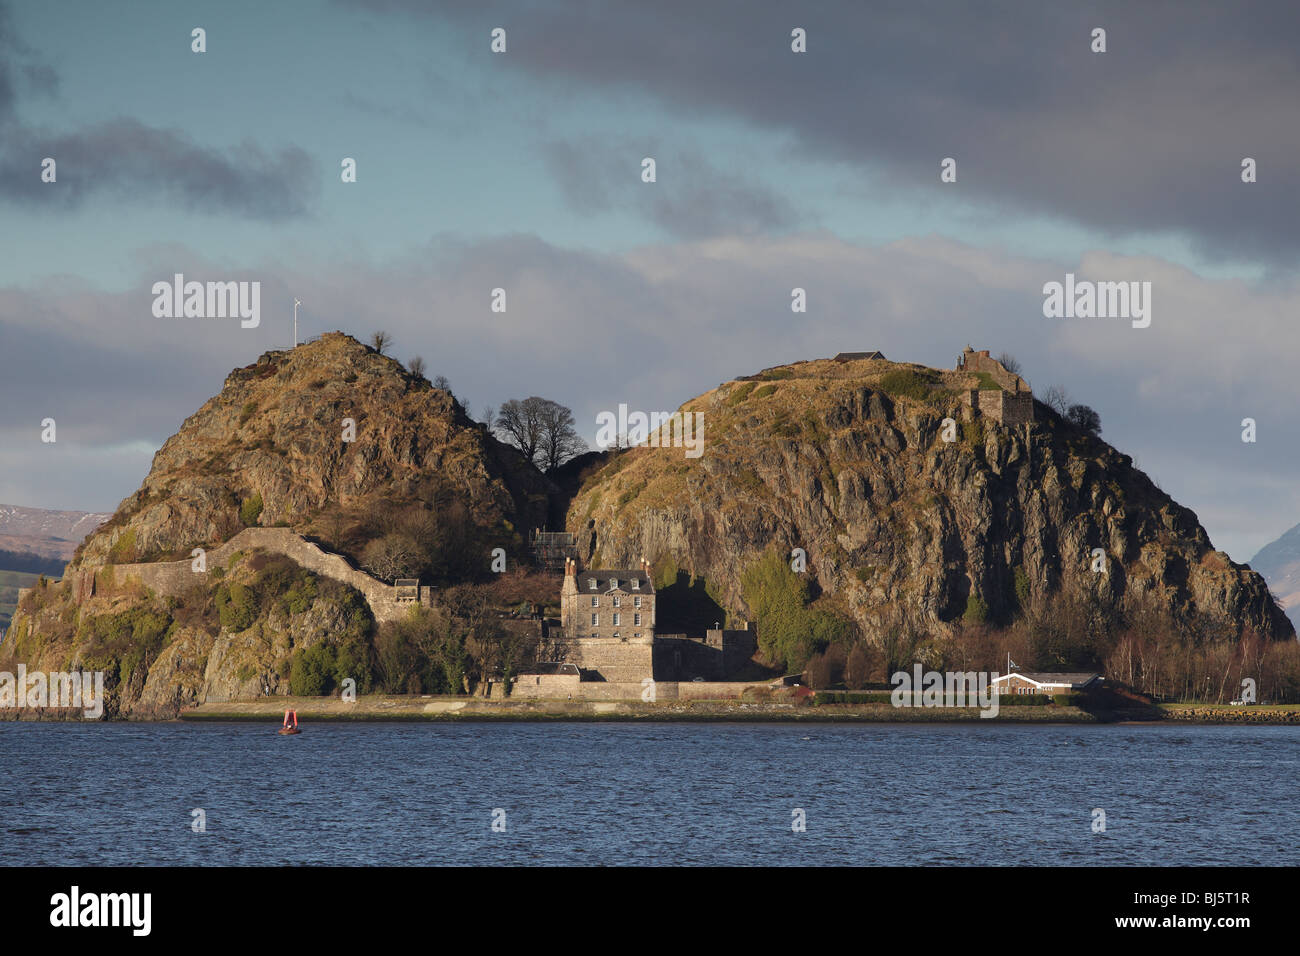 Looking across the River Clyde to Dumbarton Rock and Castle in West Dunbartonshire, Scotland, UK - Stock Image